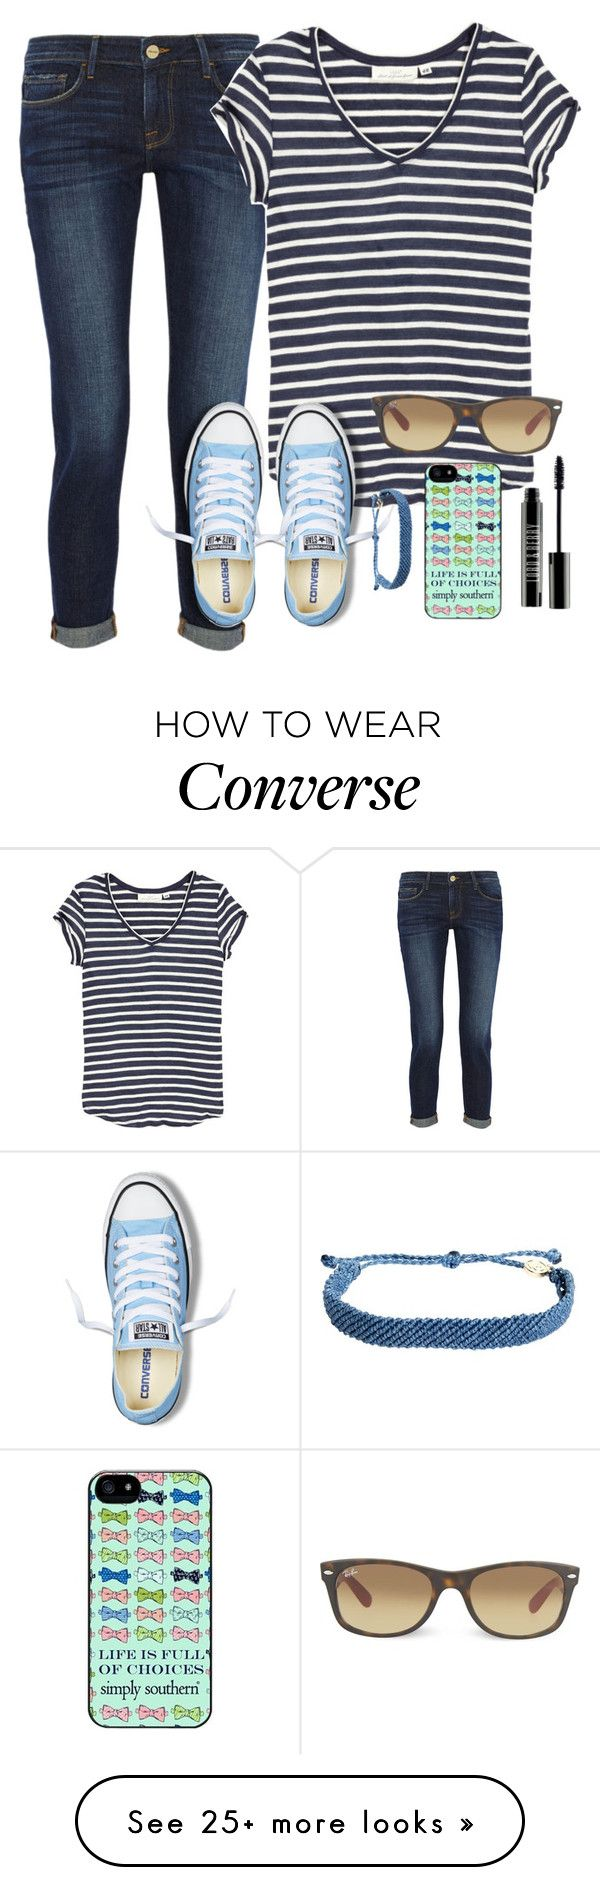 """Thanks for 700!!!"" by skatetofreedom on Polyvore featuring Frame Denim, H&M, Converse, Pura Vida, Lord & Berry and Ray-Ban"